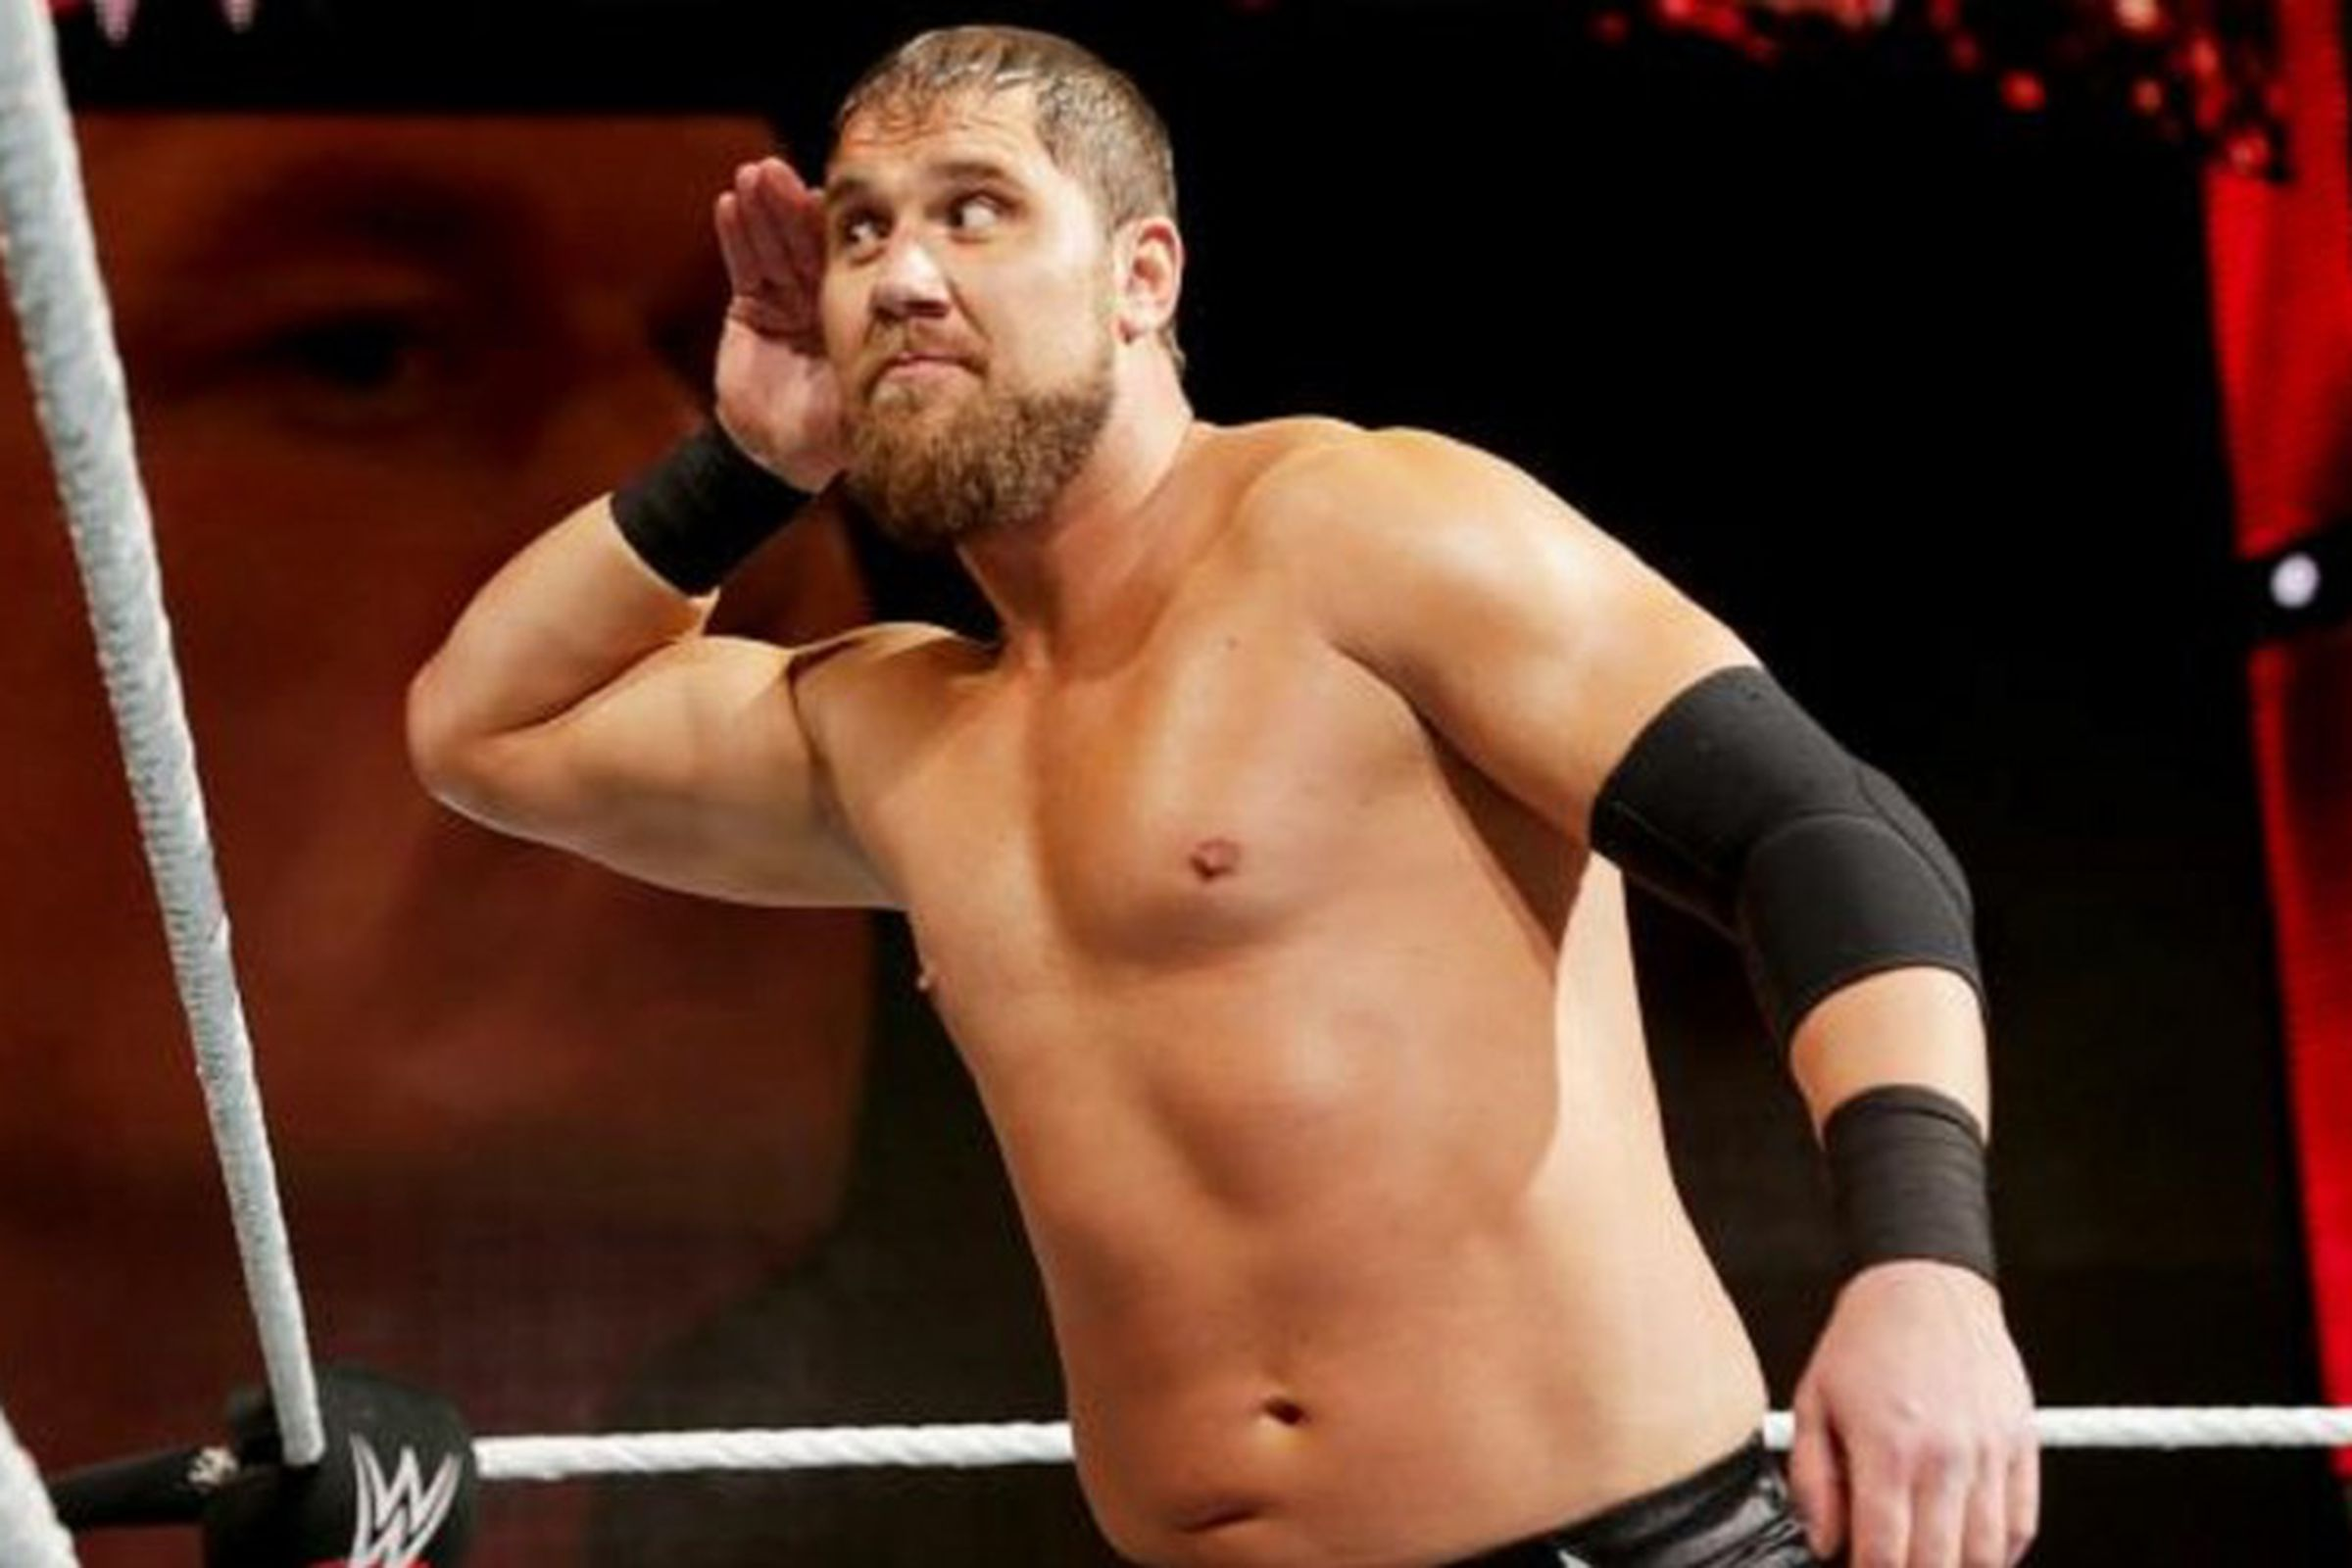 curtis axel height